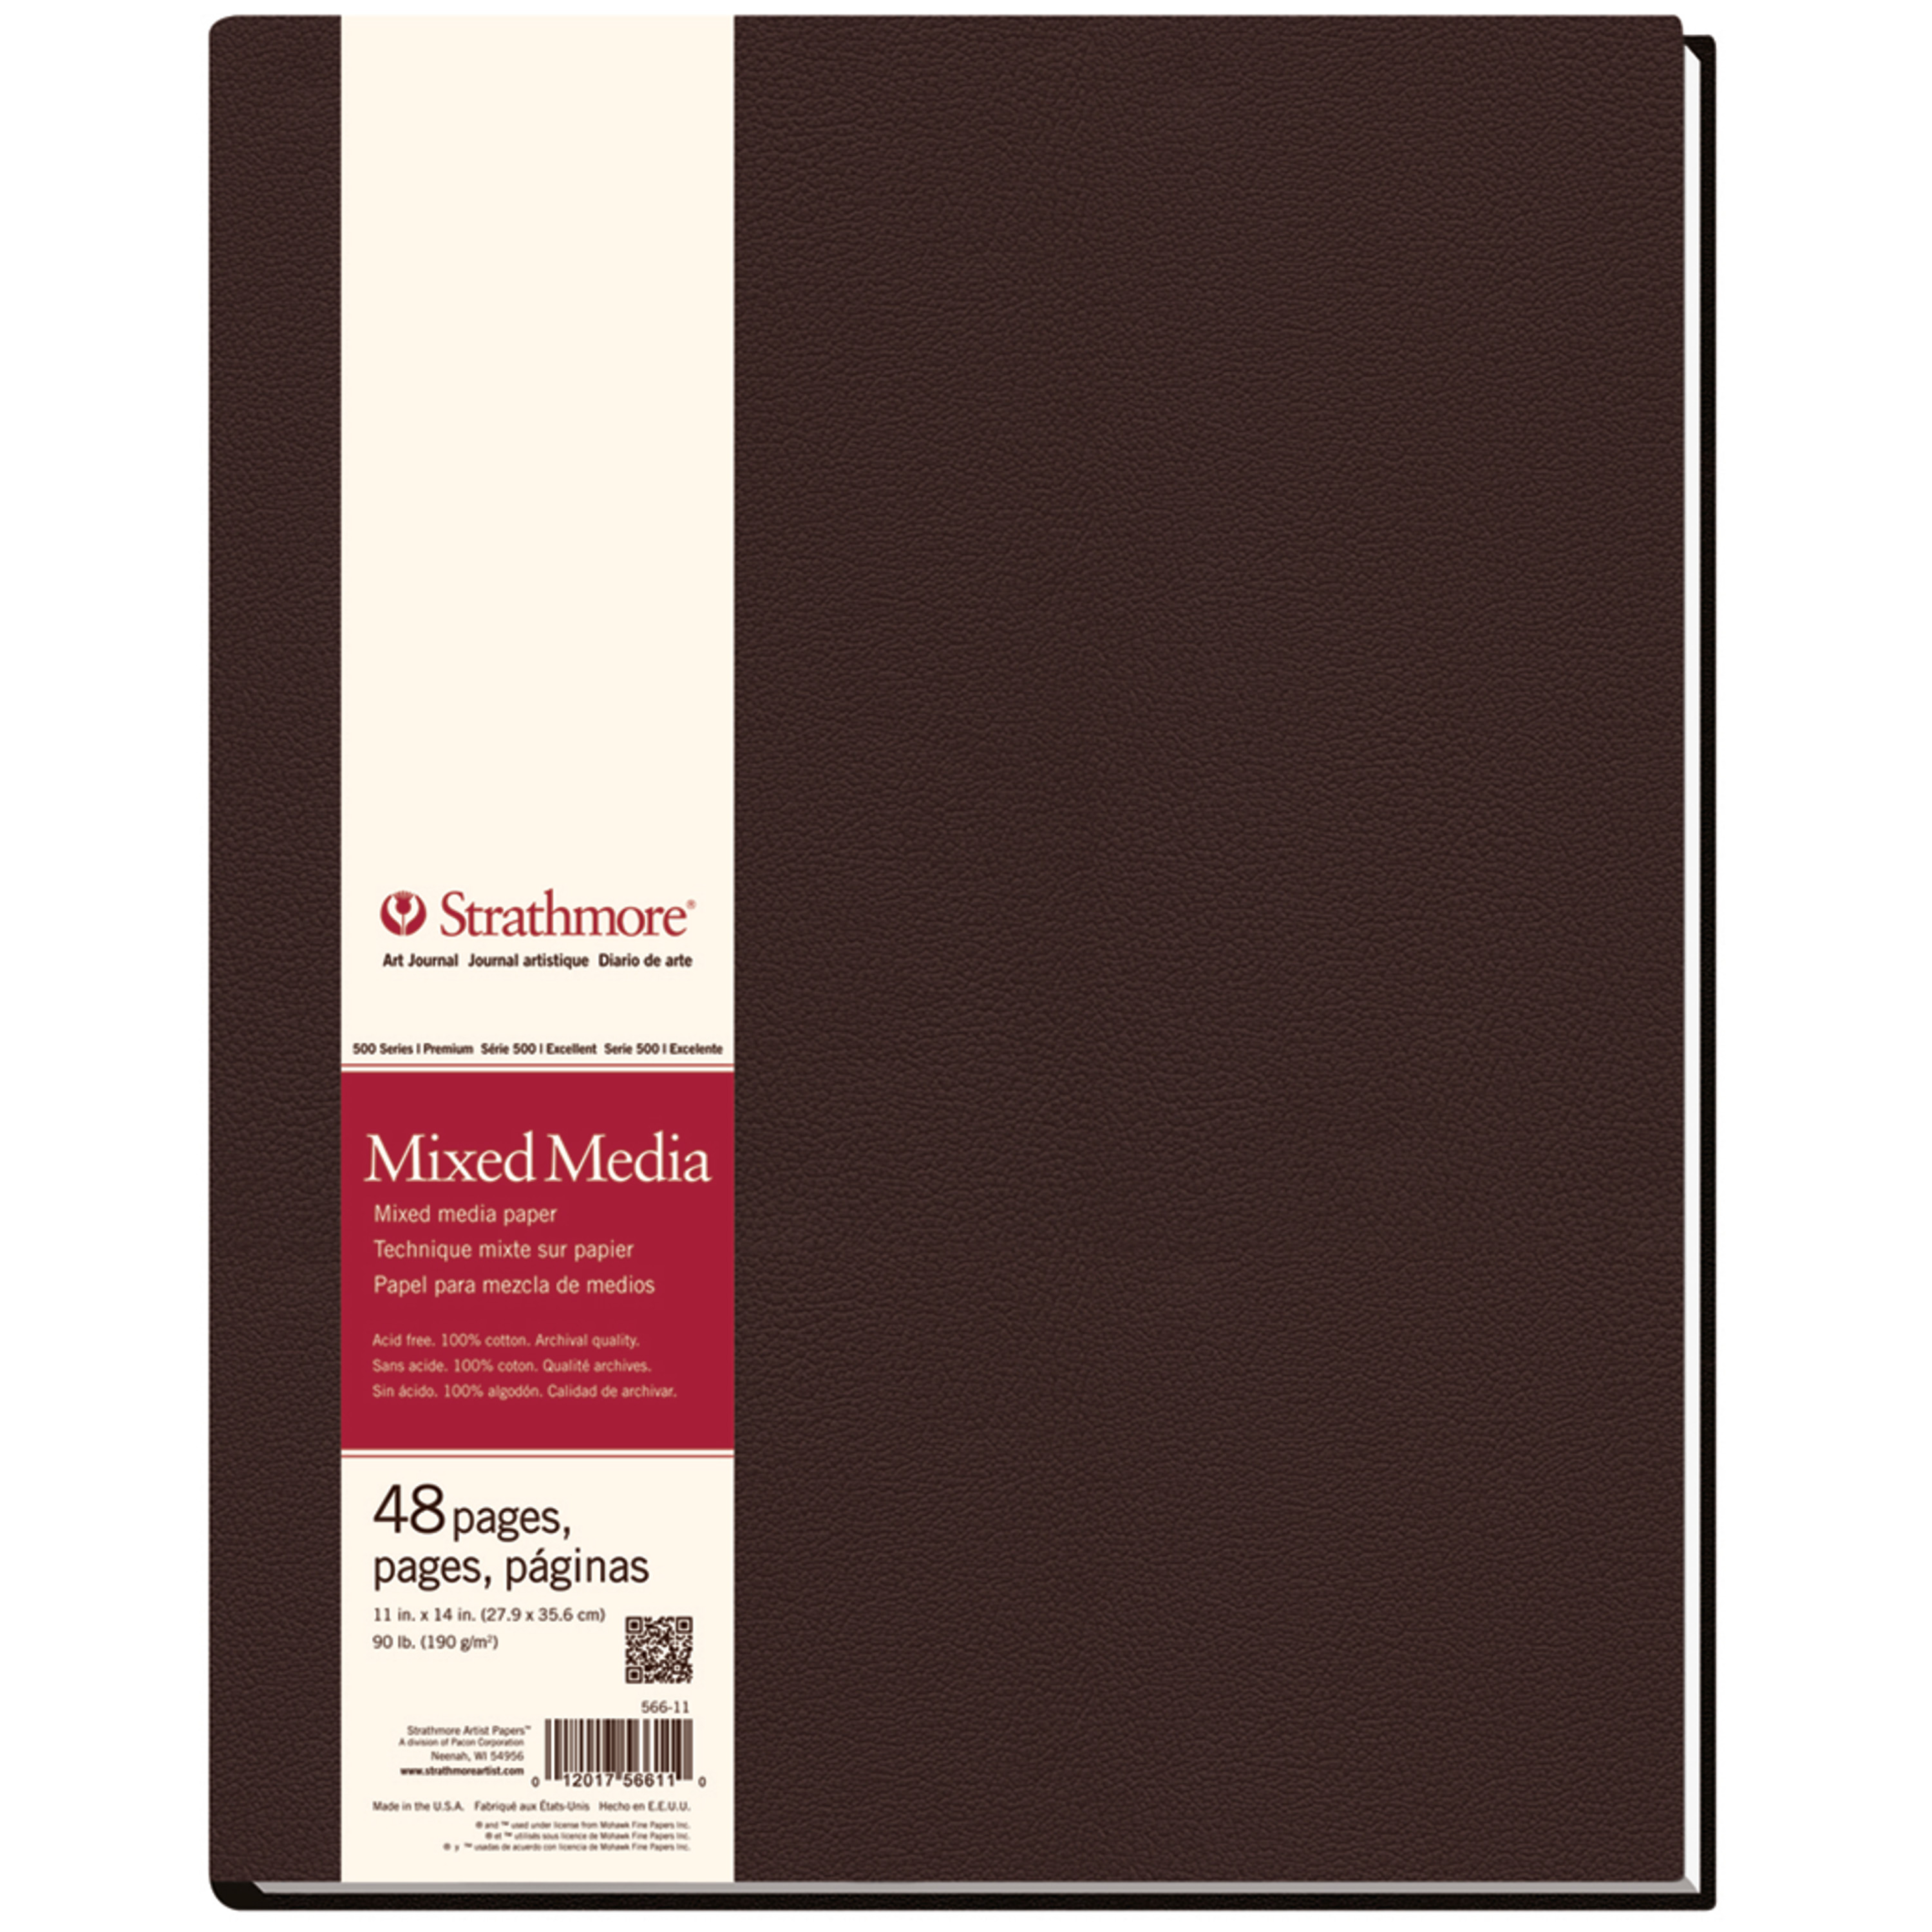 Strathmore Mixed Media Hardbound Art Journal, 500 Series, 11in x 14inin, 48 Pages